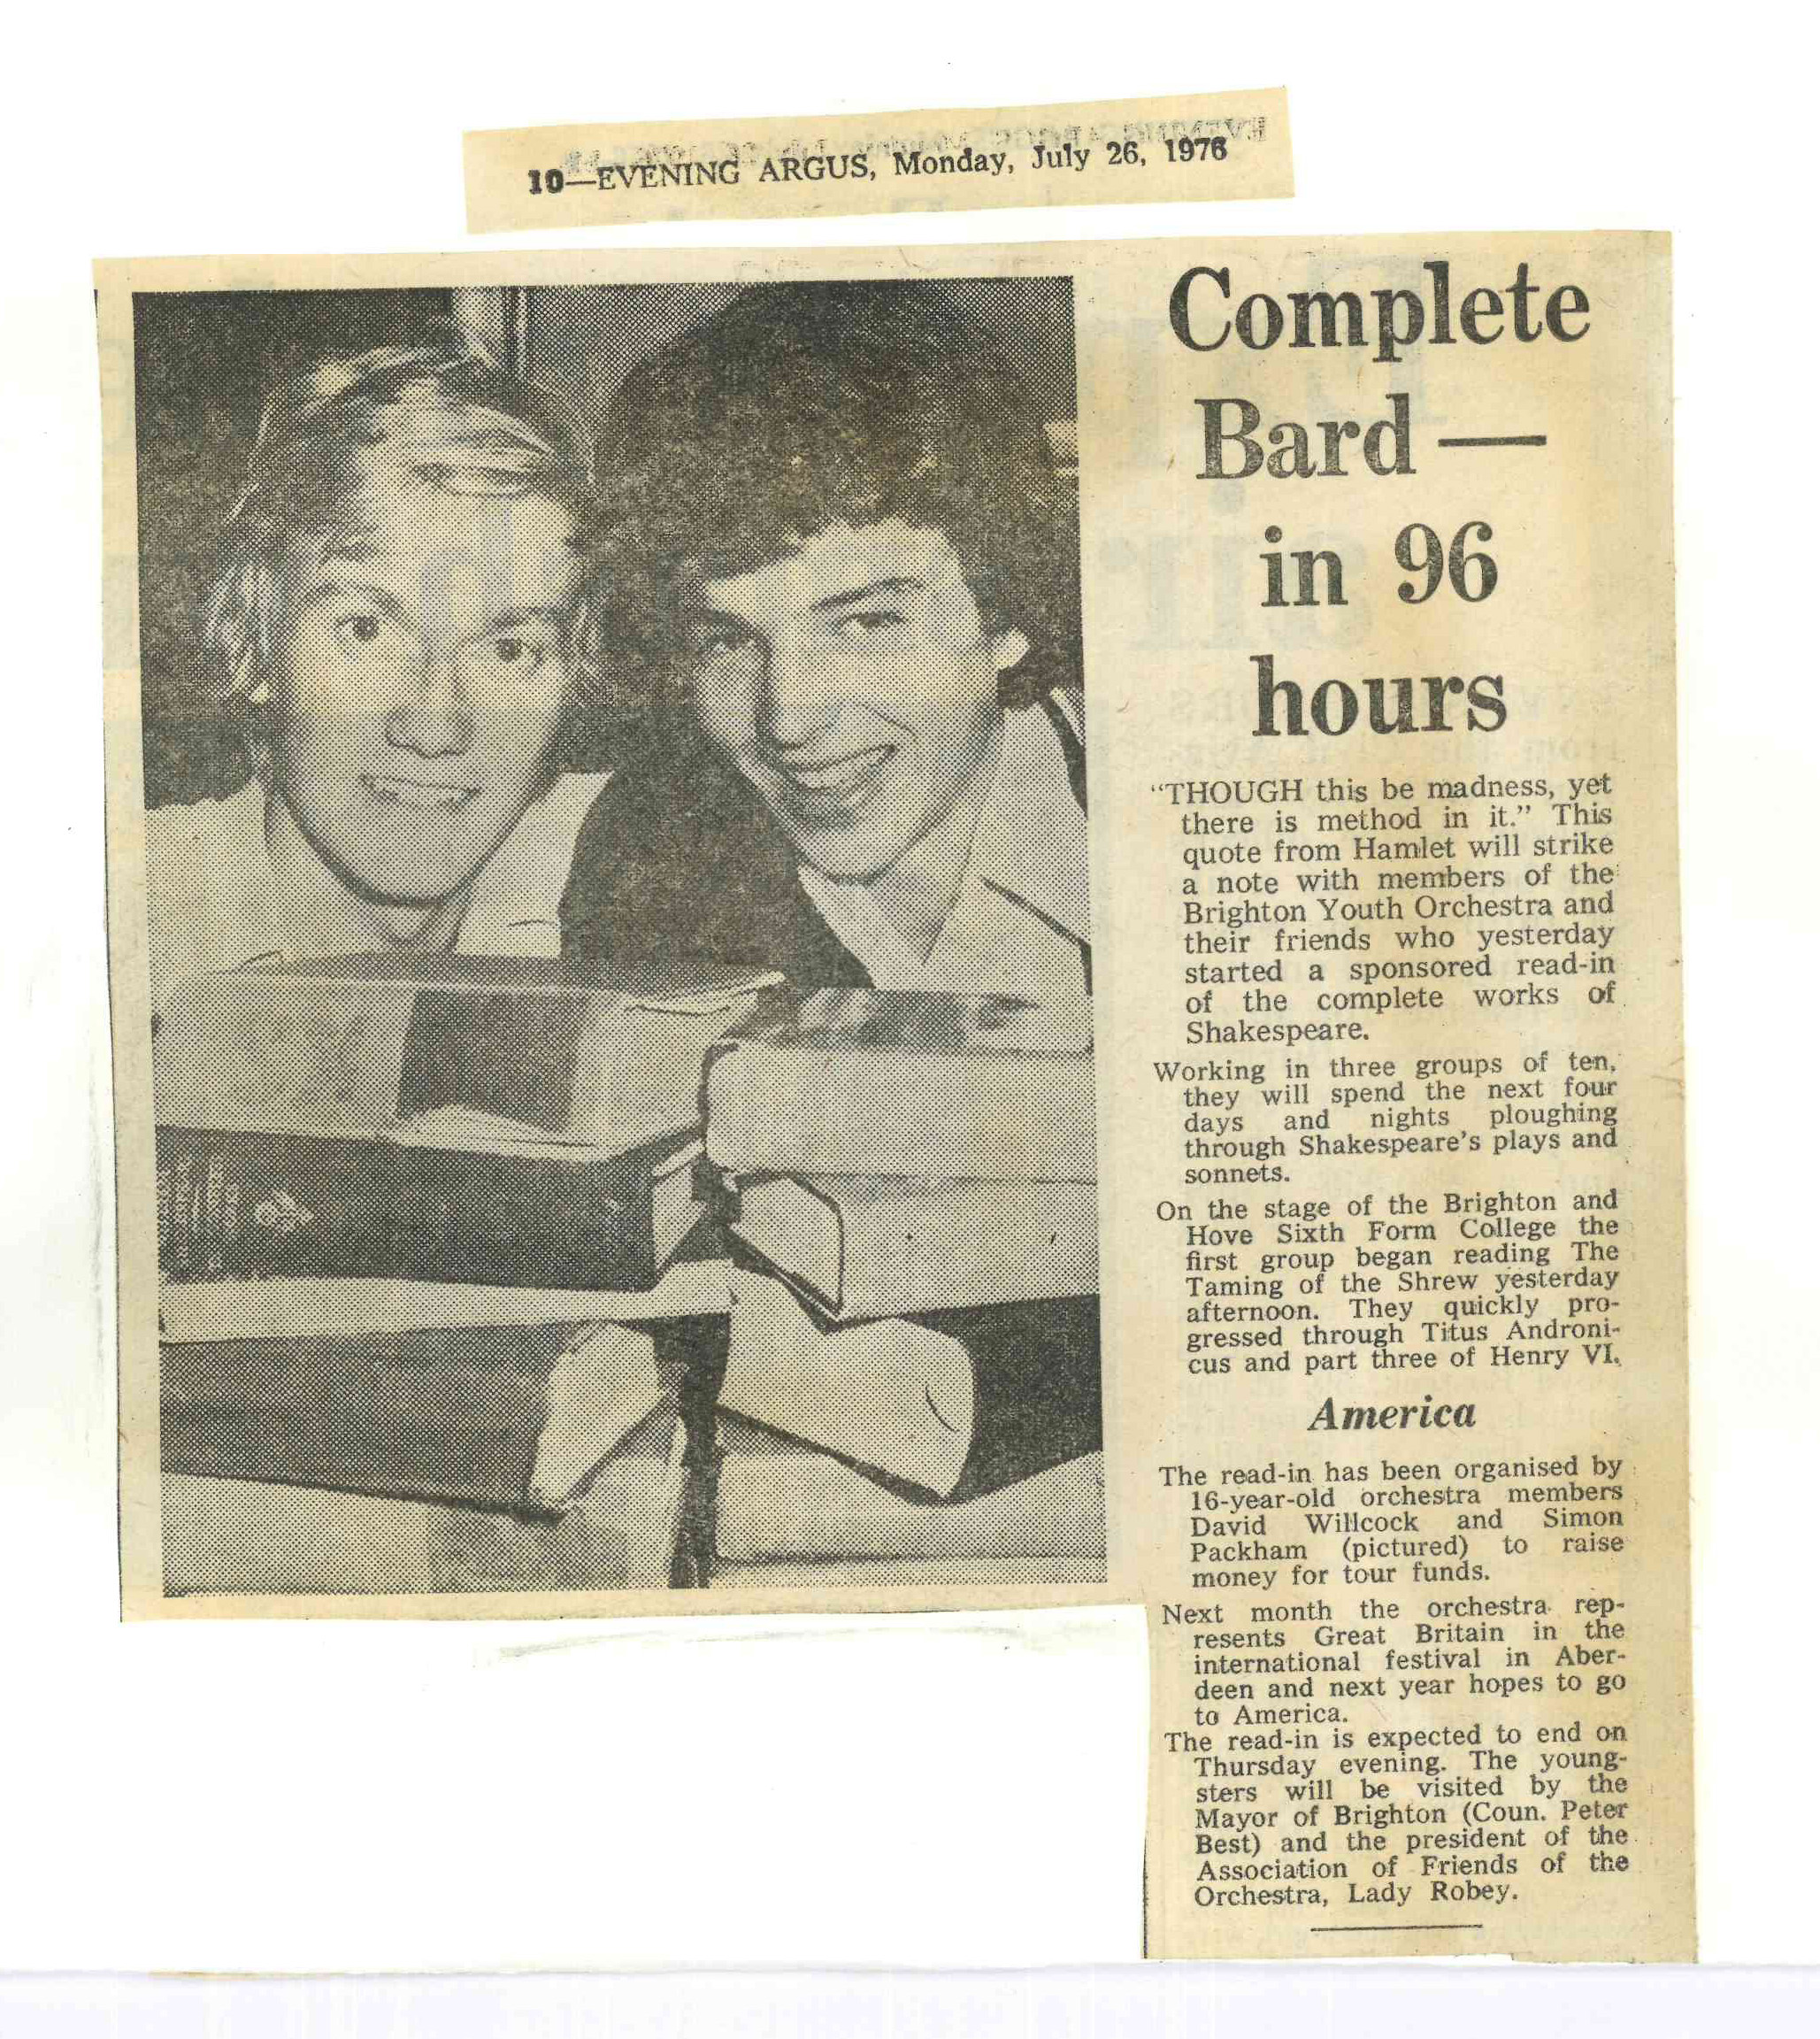 00028-Evening Argus- Shakespeare, 26th July 1976.jpg